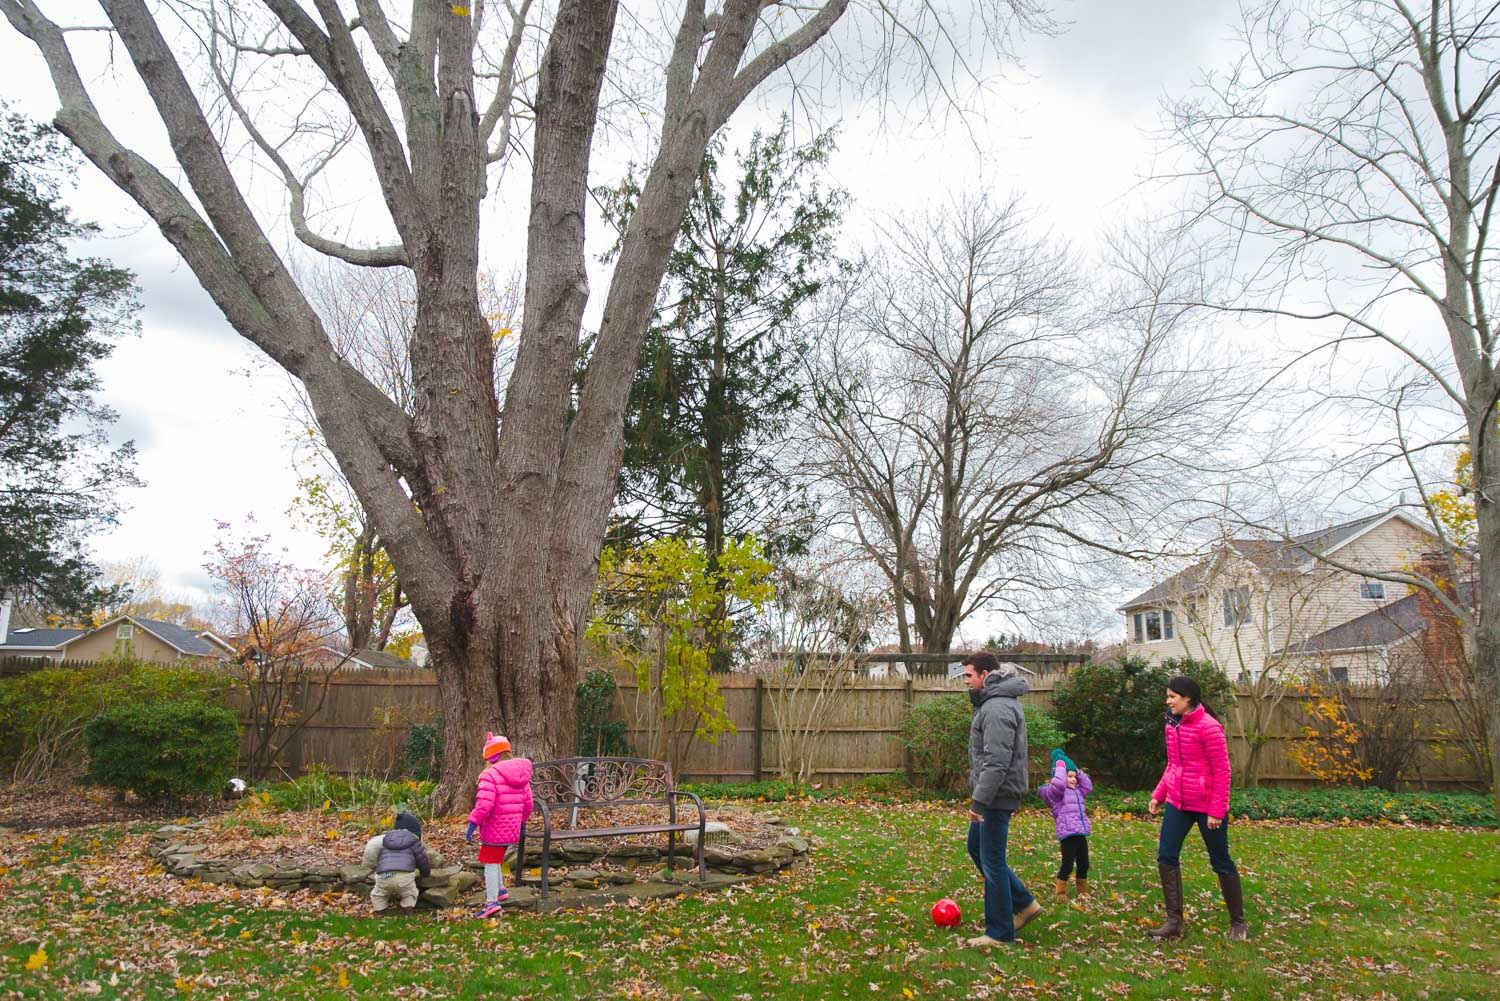 A family plays in their large backyard.